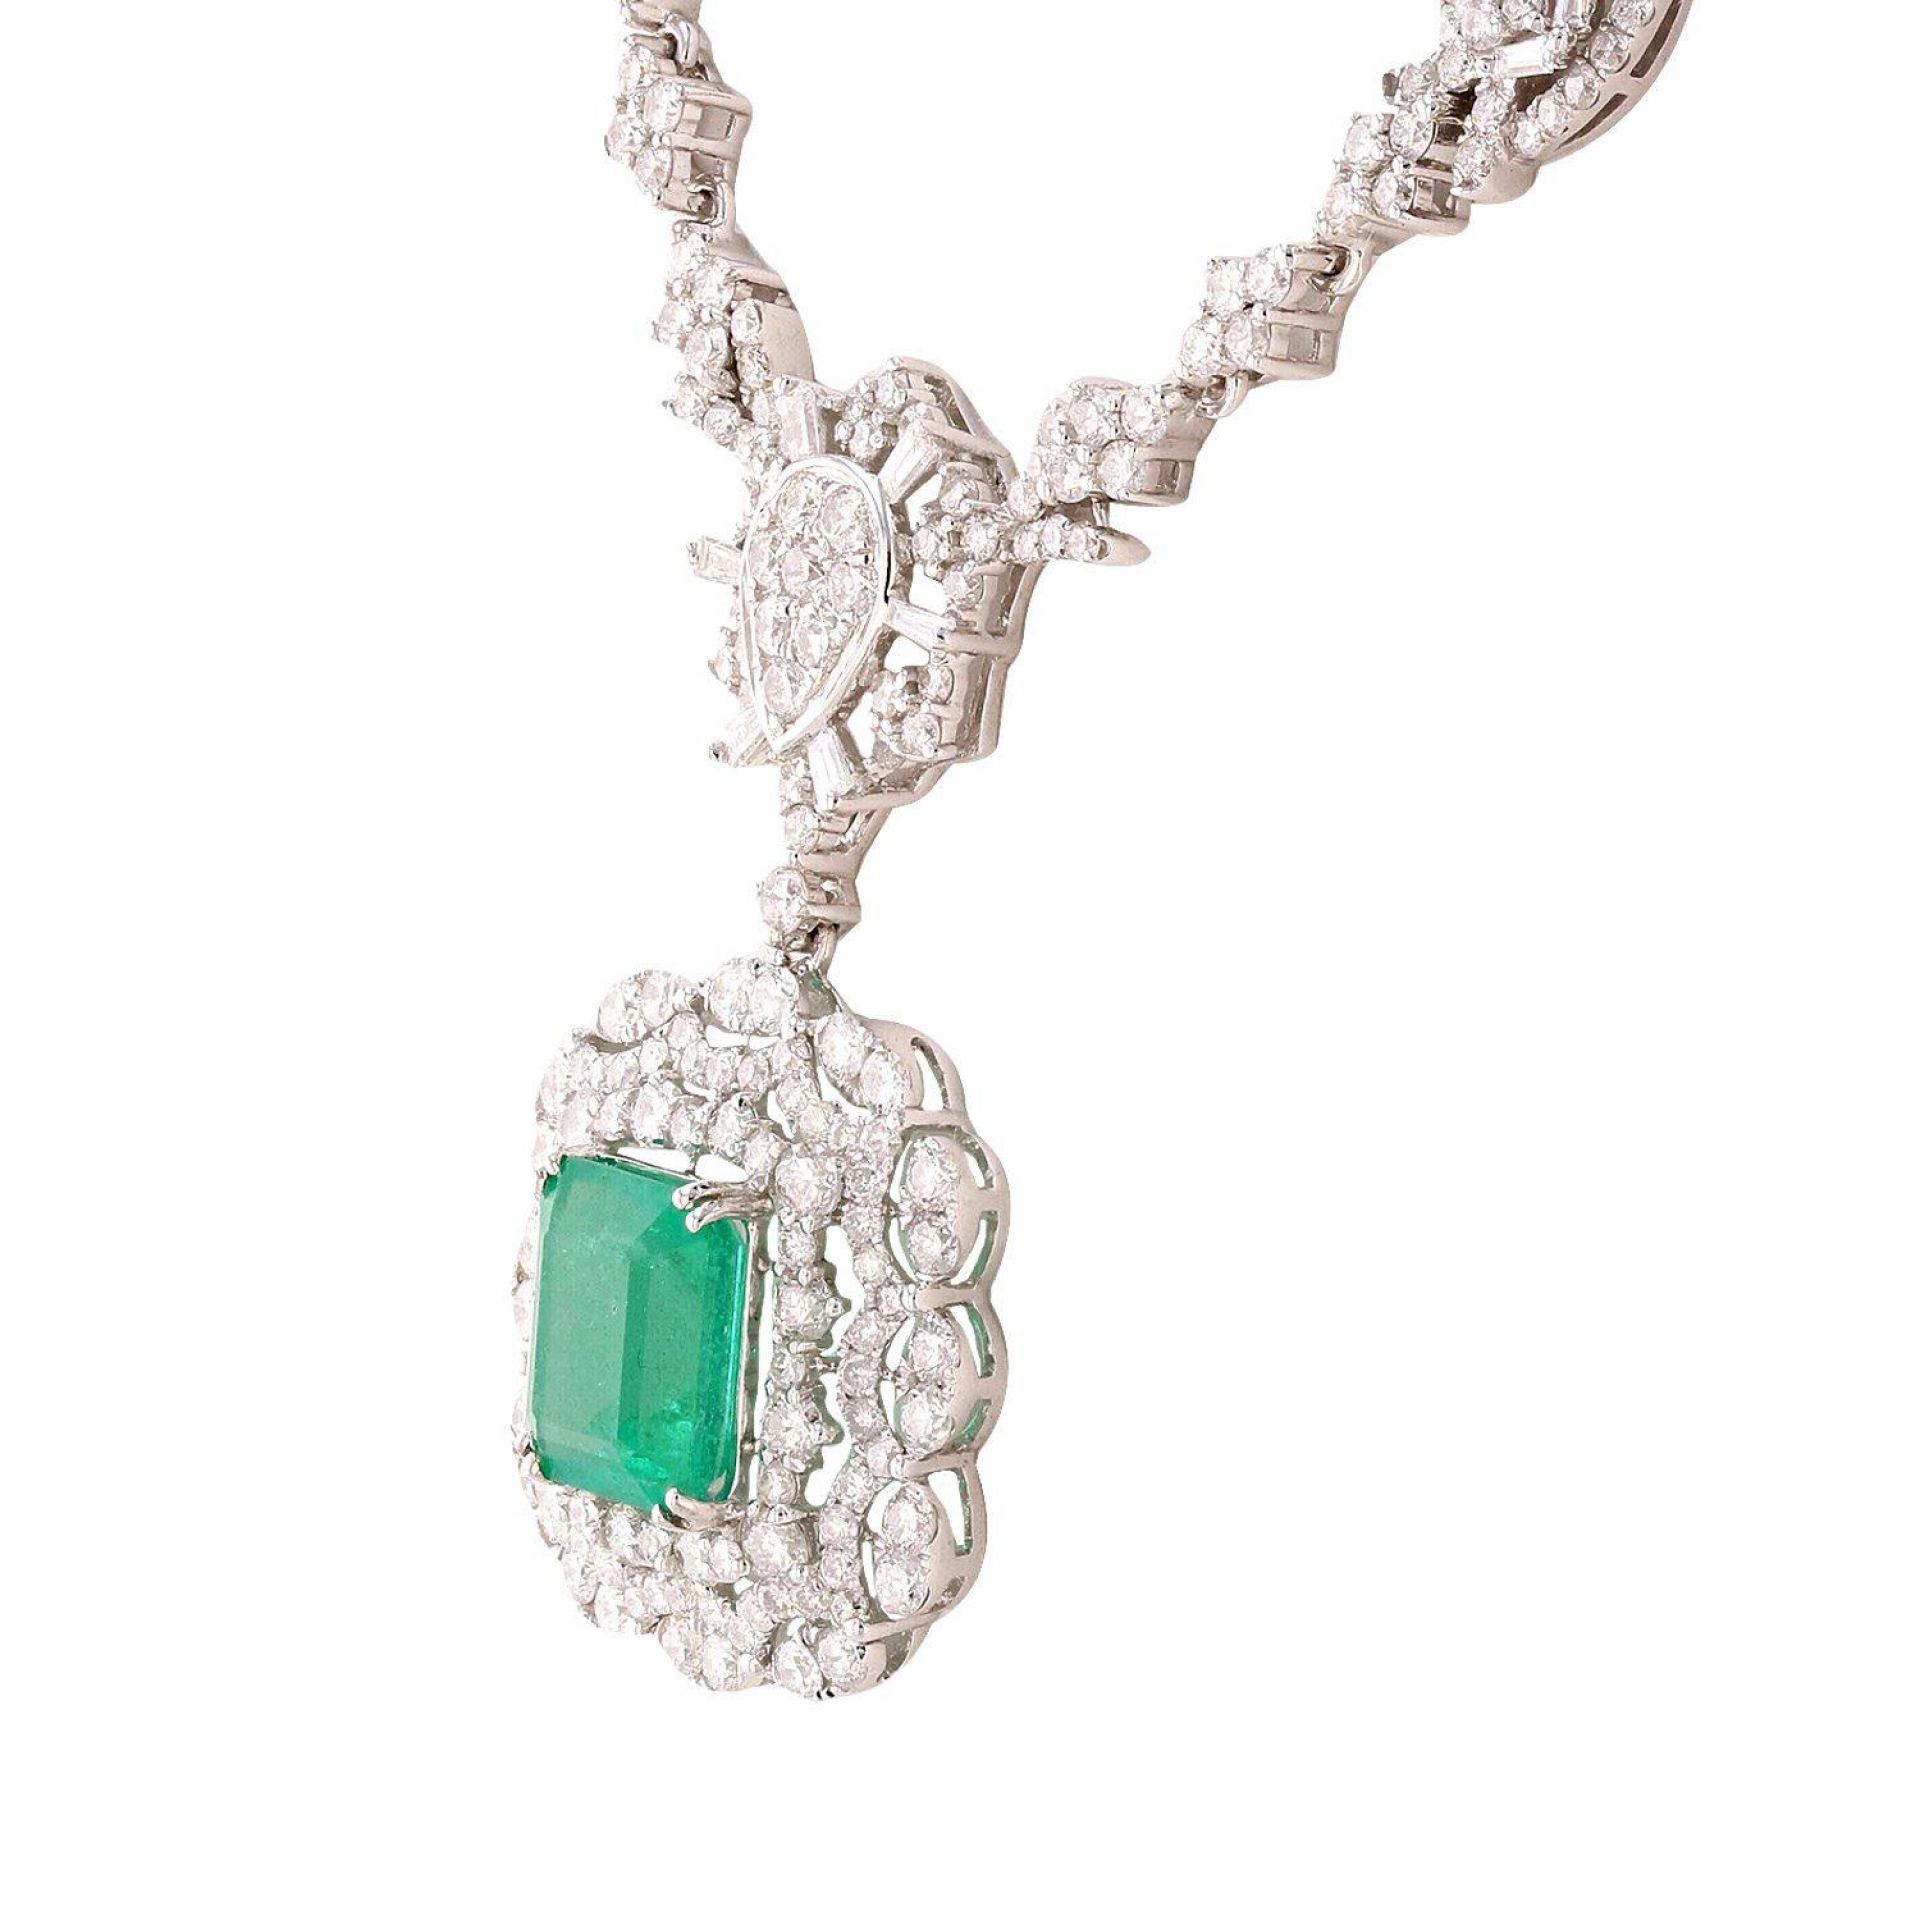 4.09ct Emerald and 6.91ctw Diamond 14K White Gold Necklace